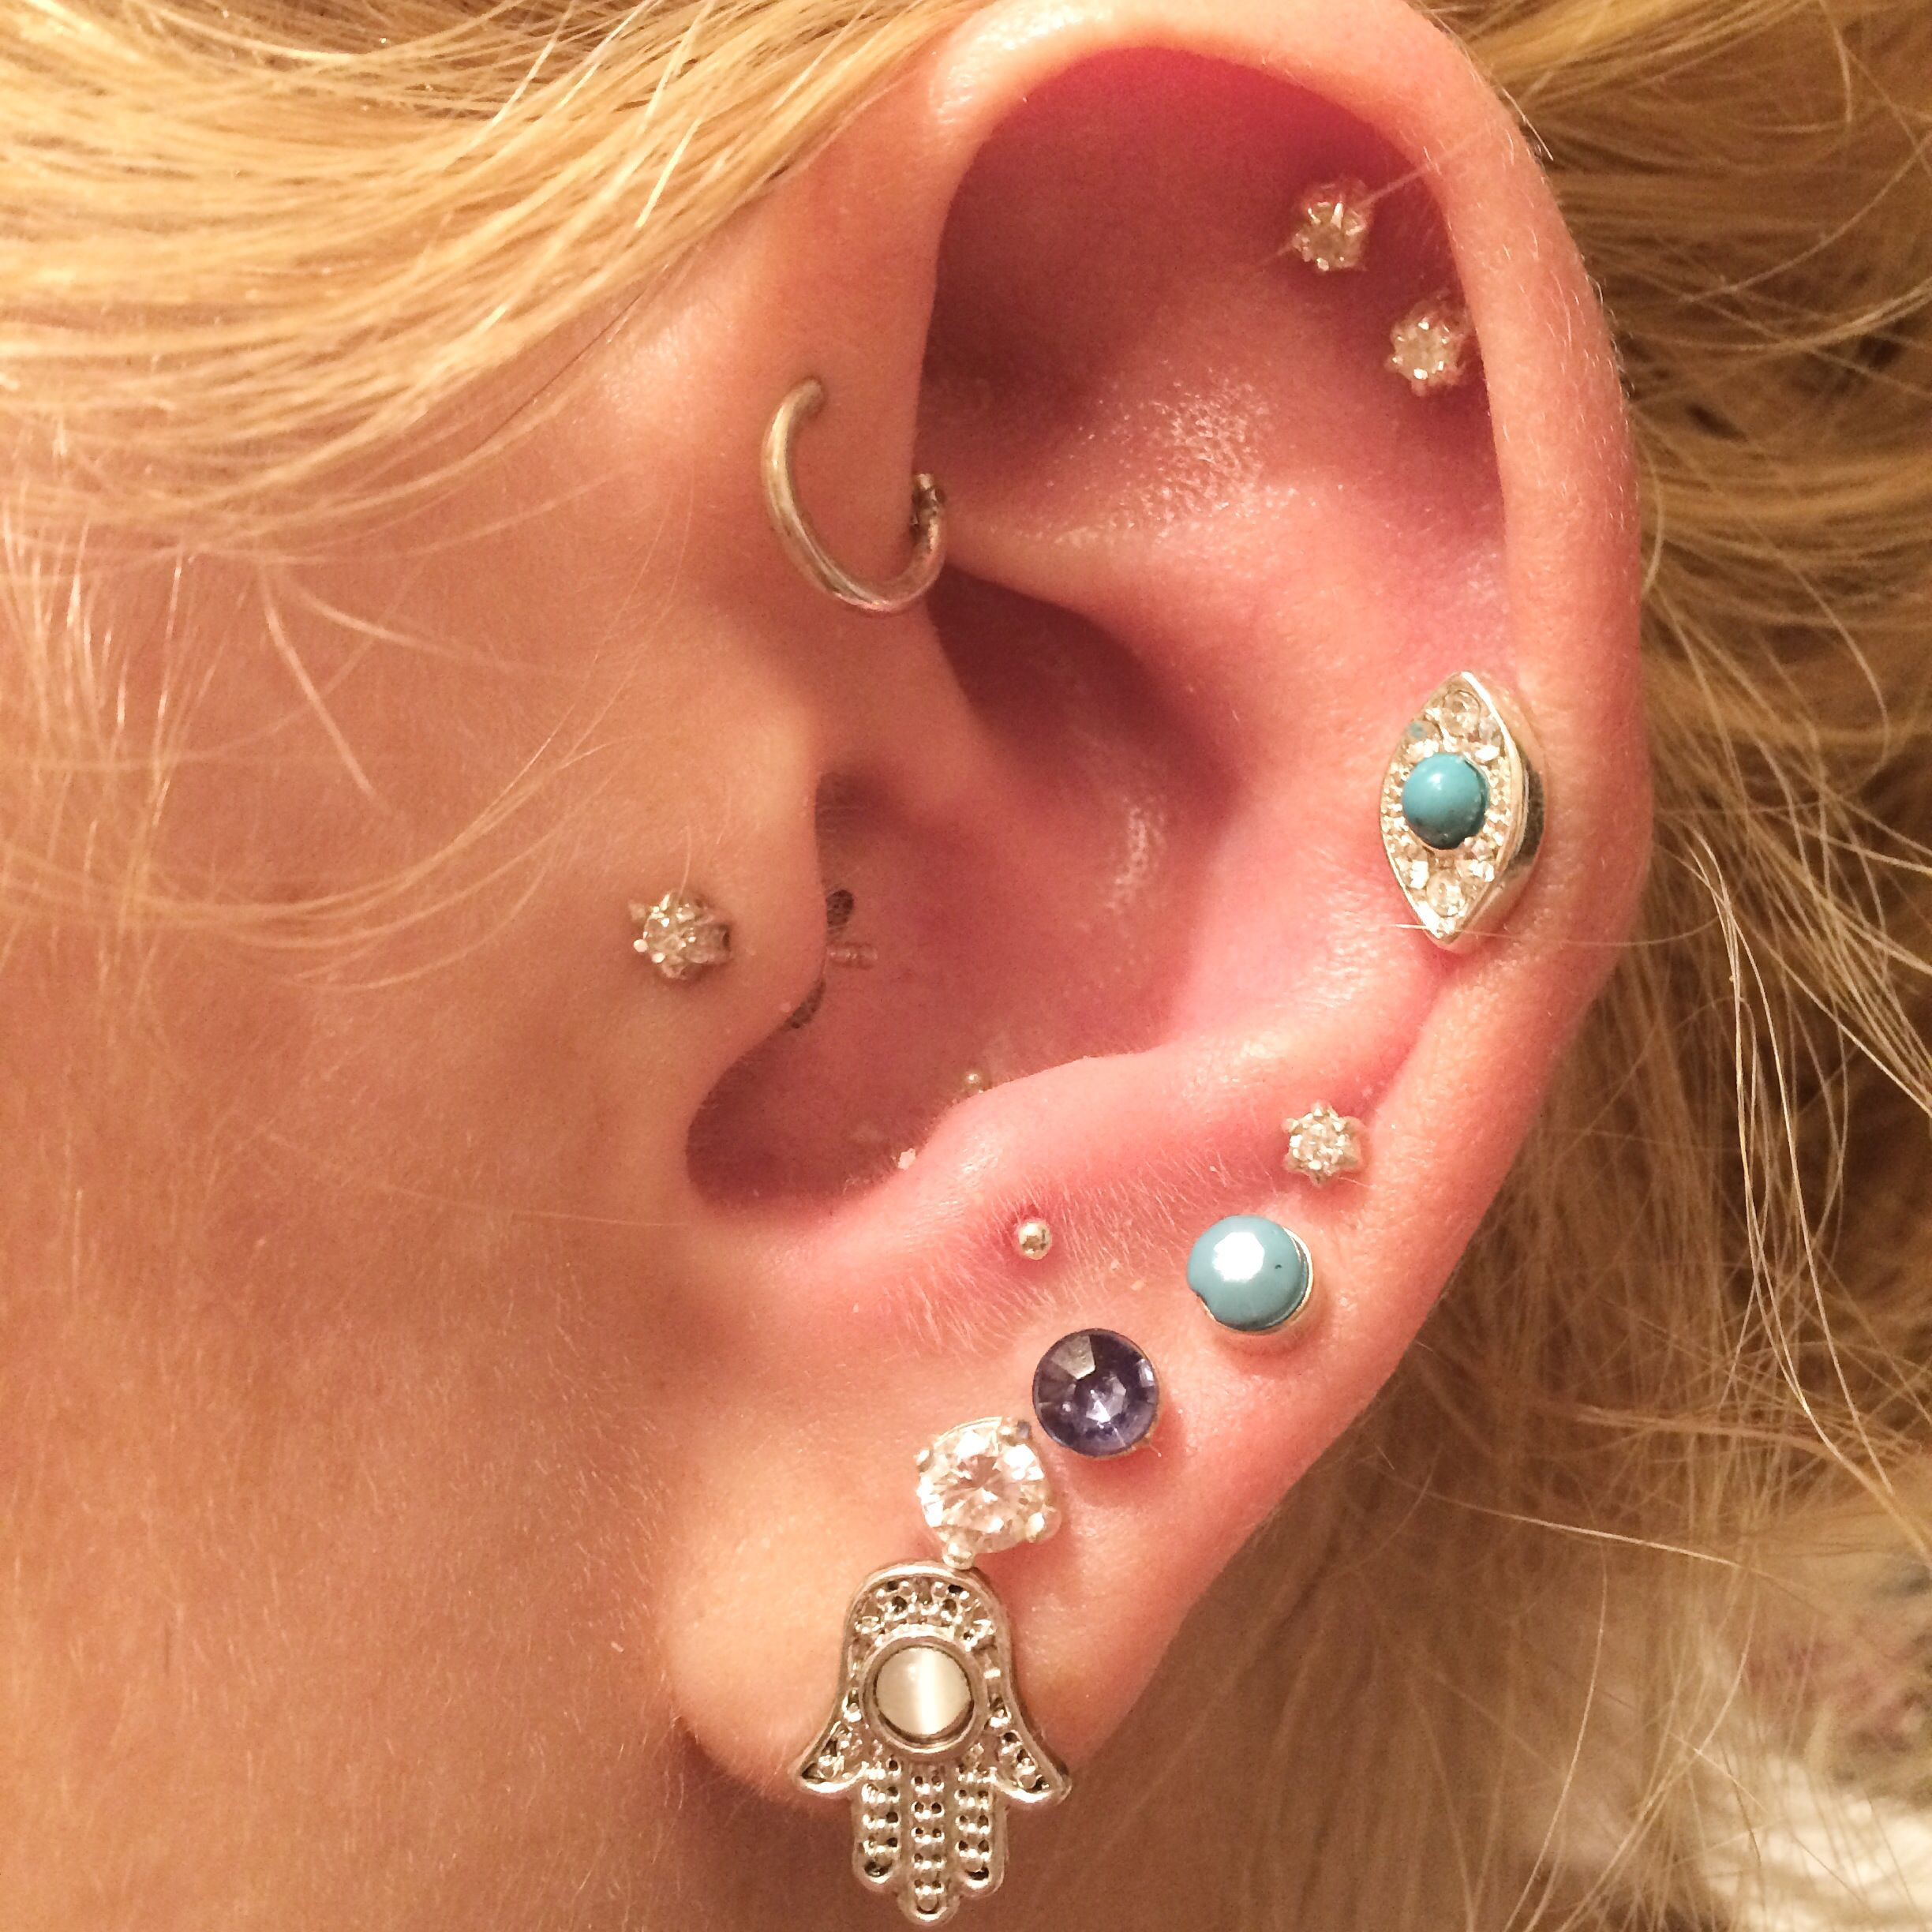 ear piercing tragus anti tragus helix forward helix double helix lobe piercings. Black Bedroom Furniture Sets. Home Design Ideas